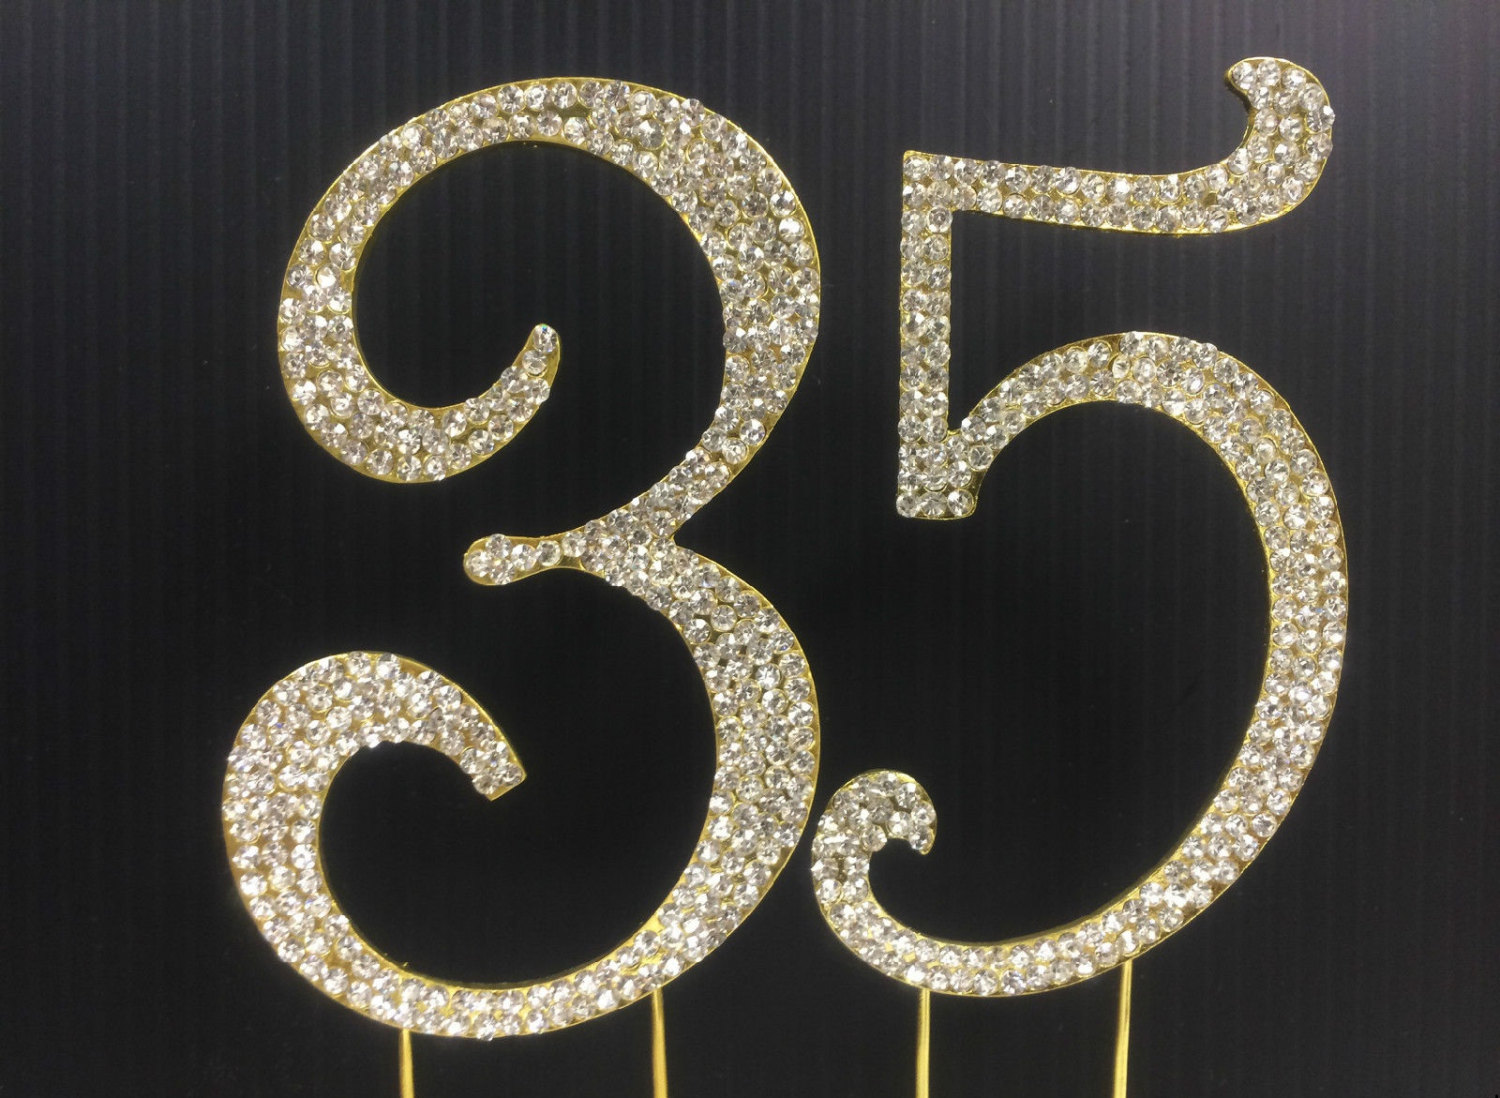 Number 35 clipart transparent download Birthday number 35 clipart - Clip Art Library transparent download